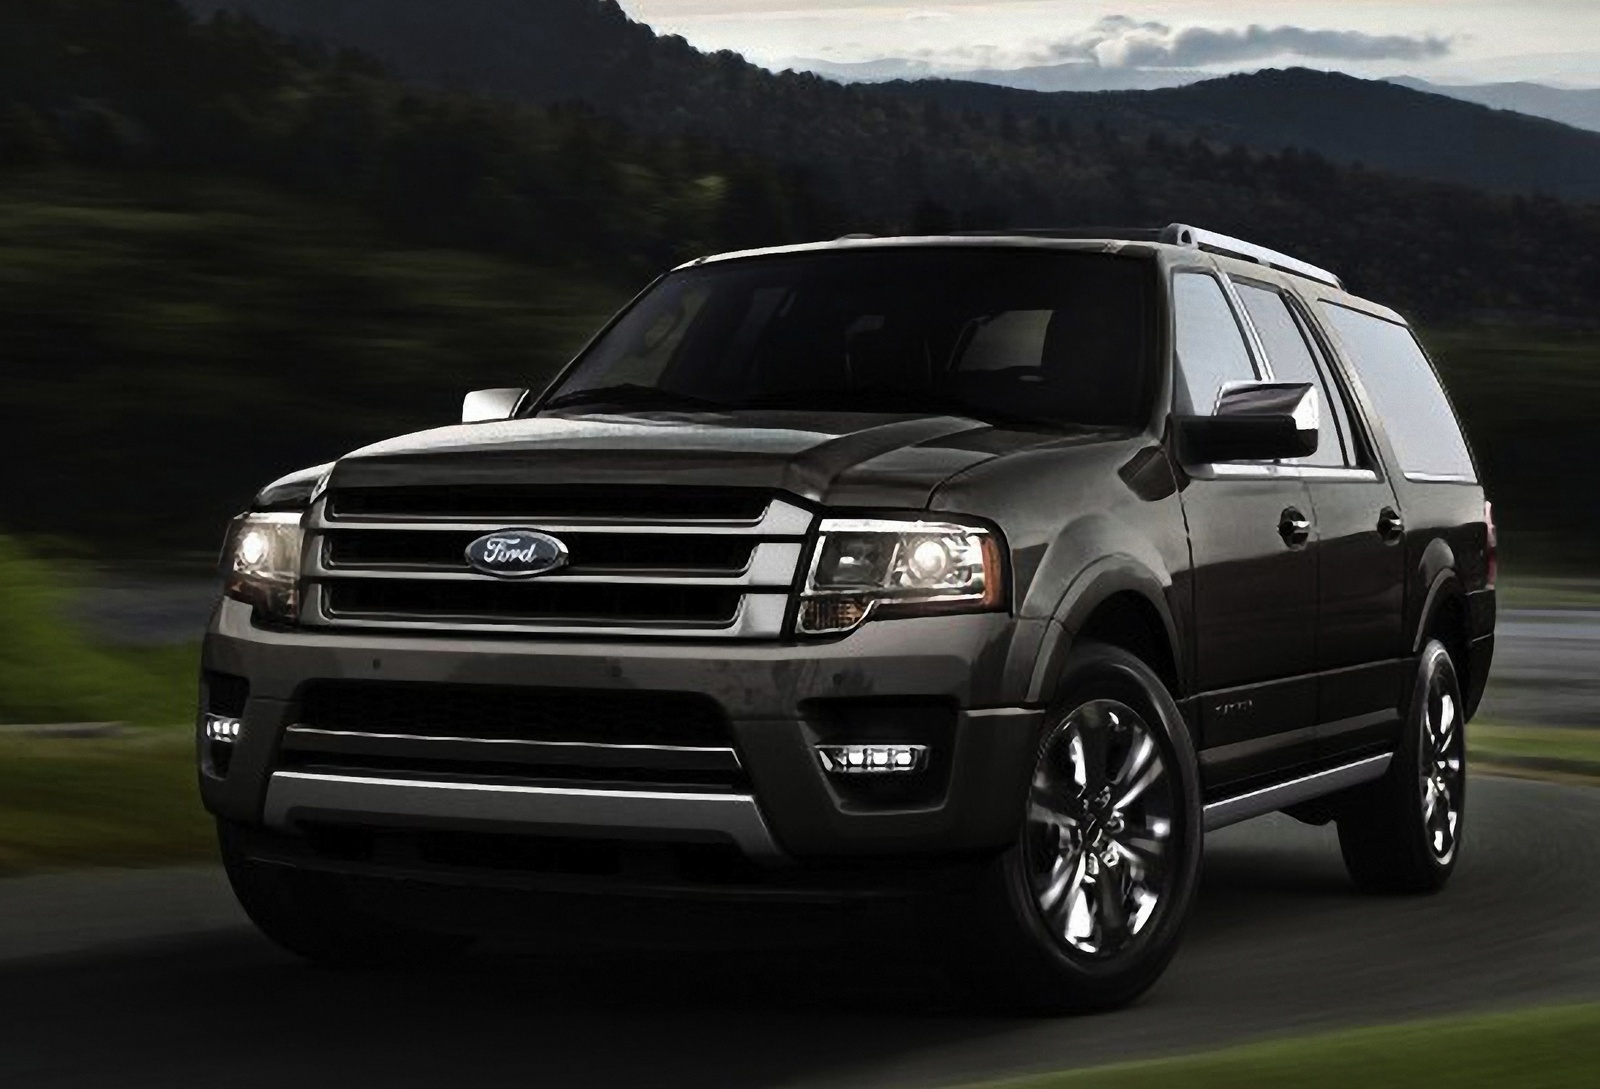 new 2015 ford expedition for sale richmond va cargurus. Black Bedroom Furniture Sets. Home Design Ideas